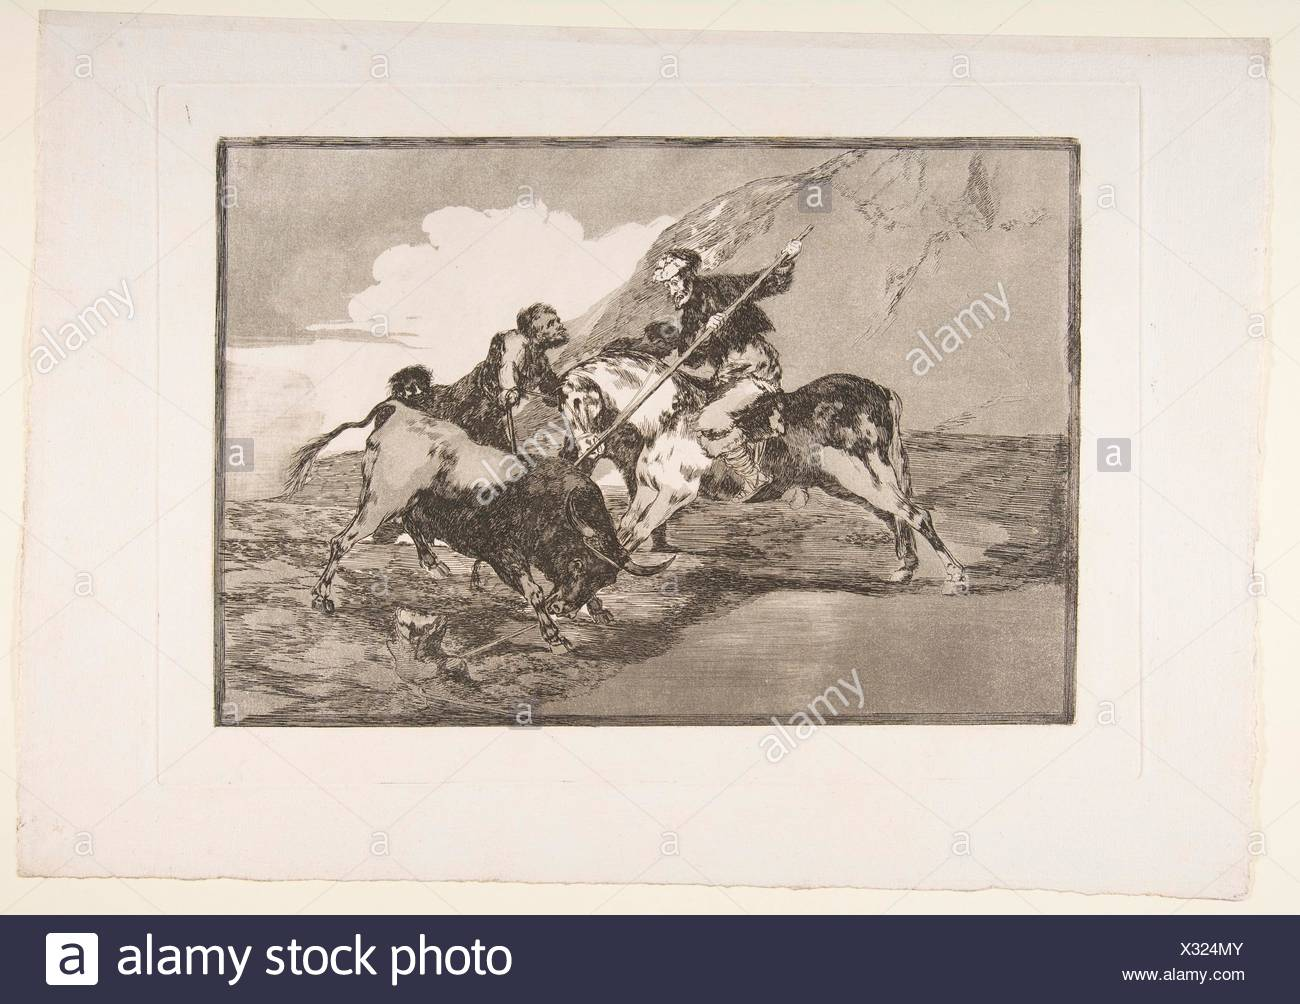 Plate 1 from 'The Tauromaquia': The way in which the ancient Spaniards hunted bulls on horseback in the open country. Series/Portfolio: La - Stock Image